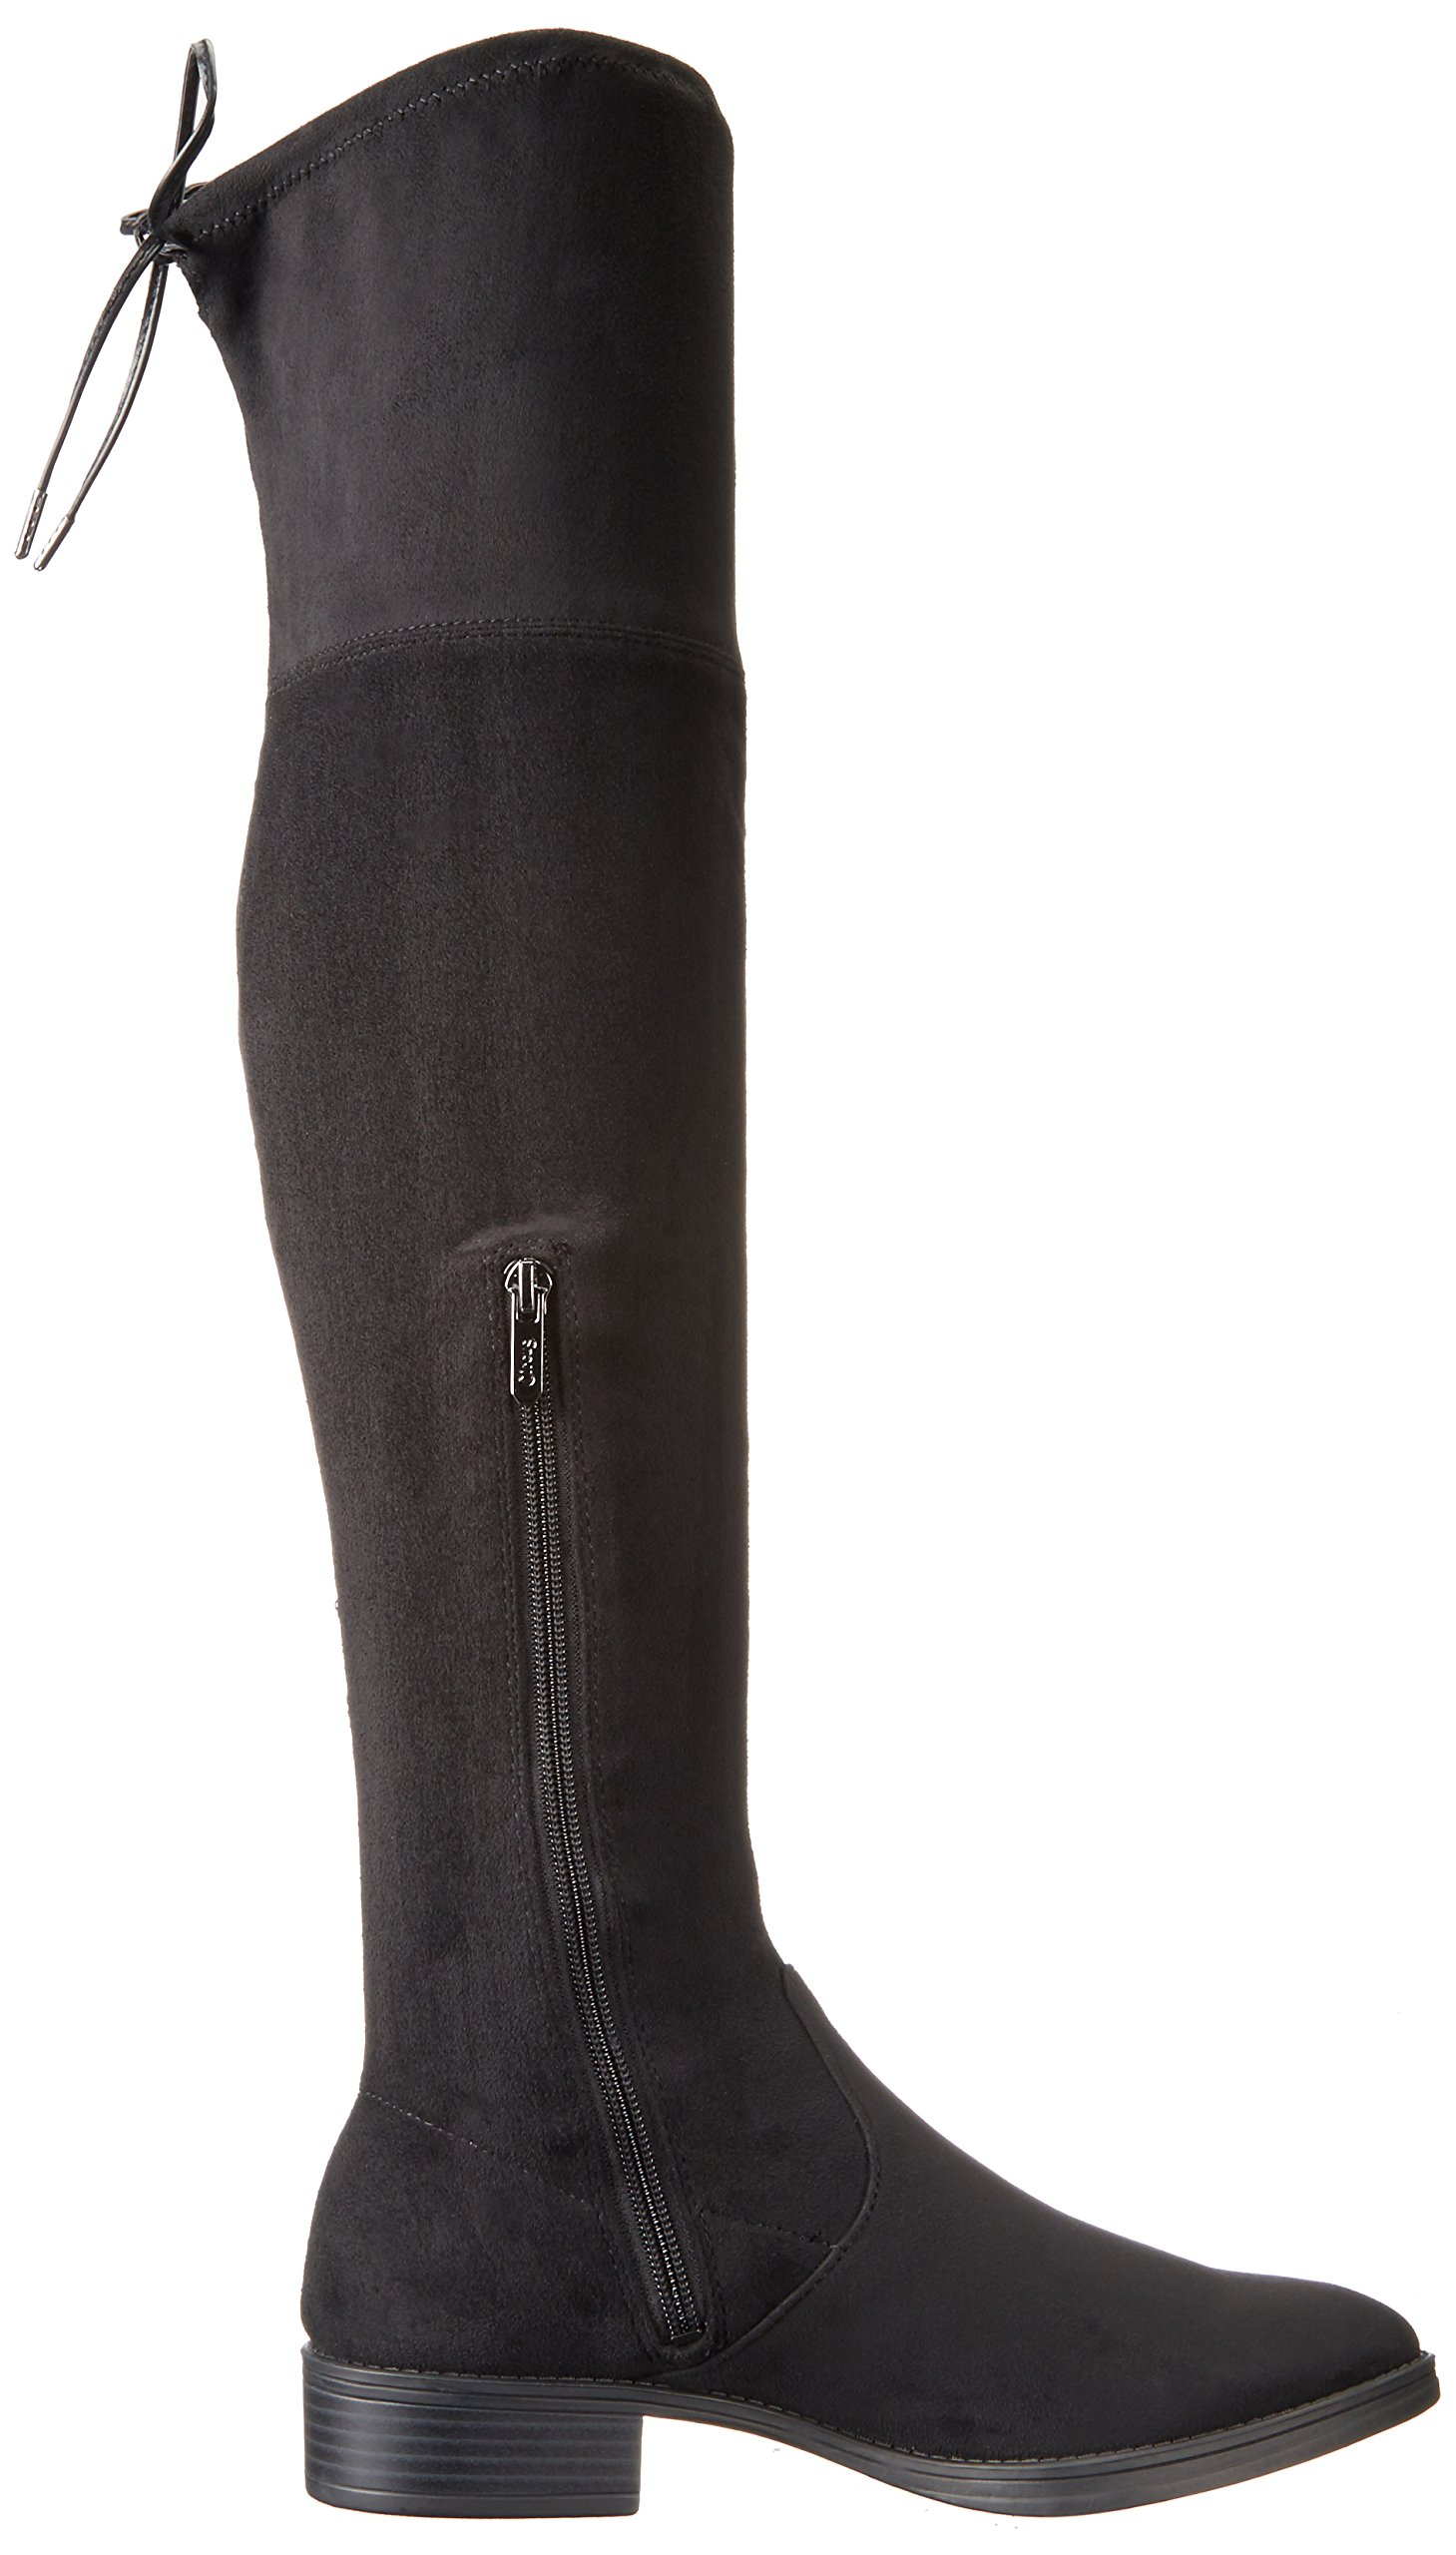 Circus by Sam Edelman Women's Peyton Over The Knee Boot, Black, 6.5 Medium US by Circus by Sam Edelman (Image #7)